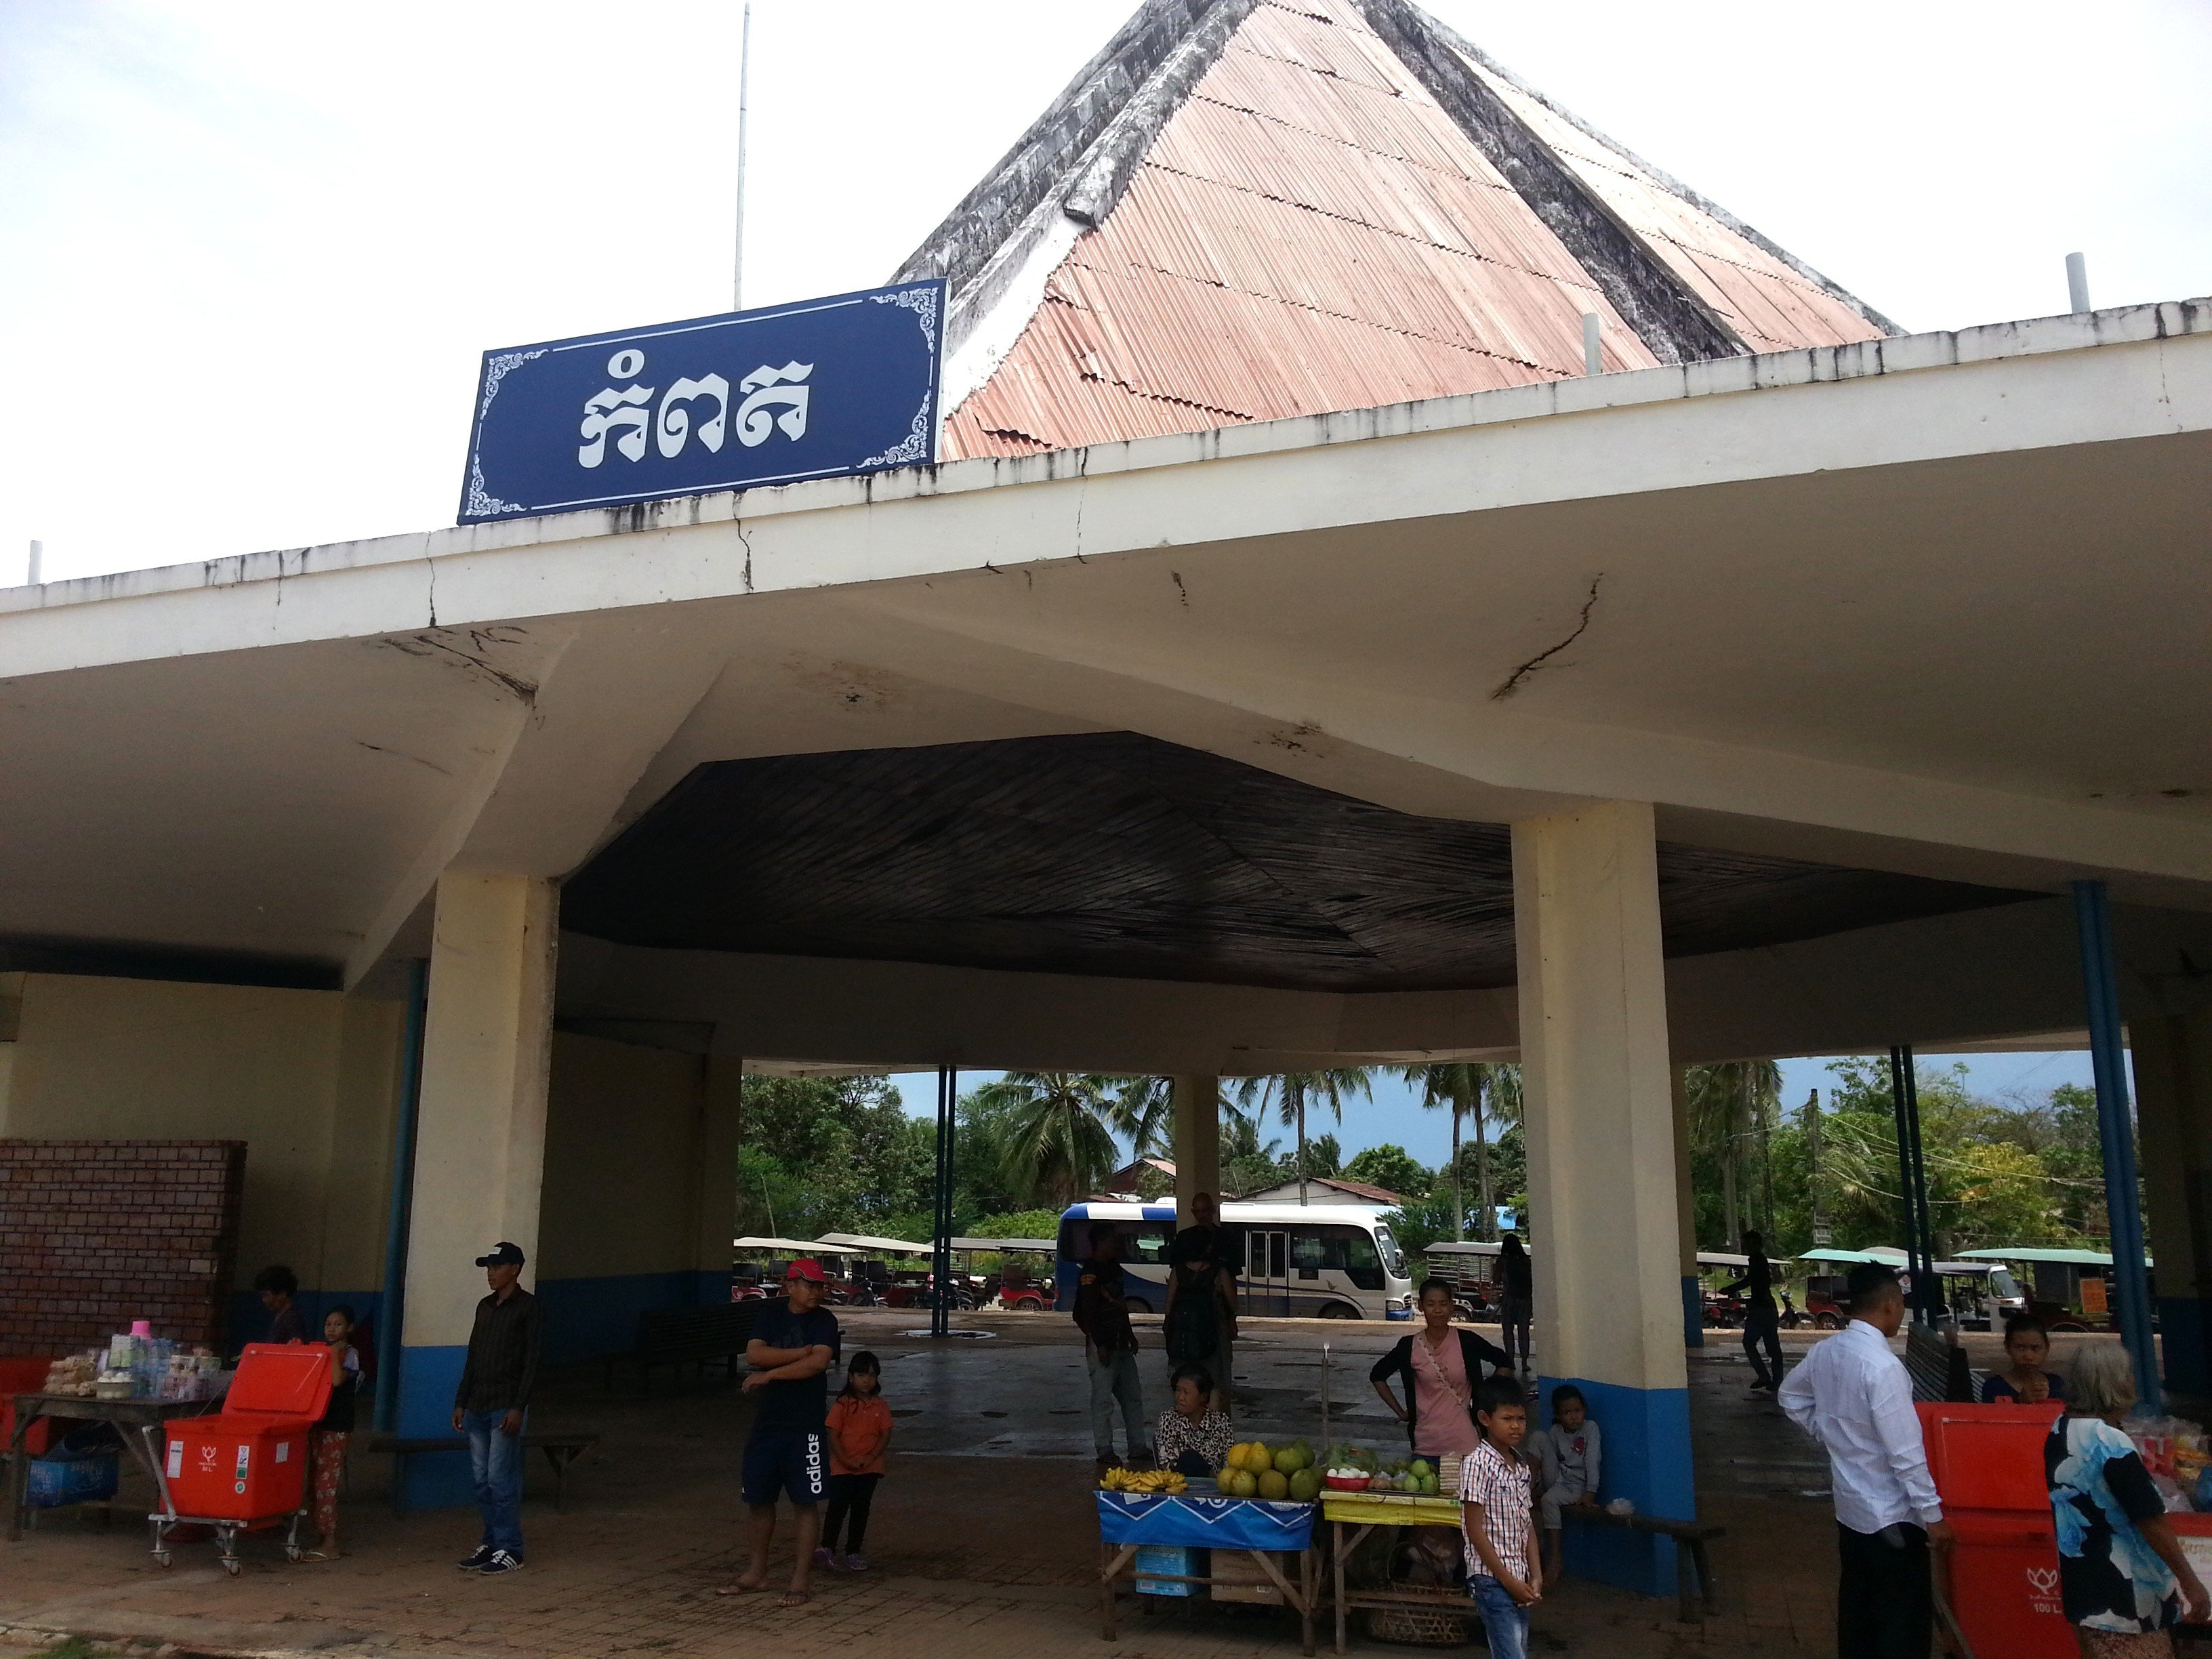 Vendors on the platform at Kampot Train Station